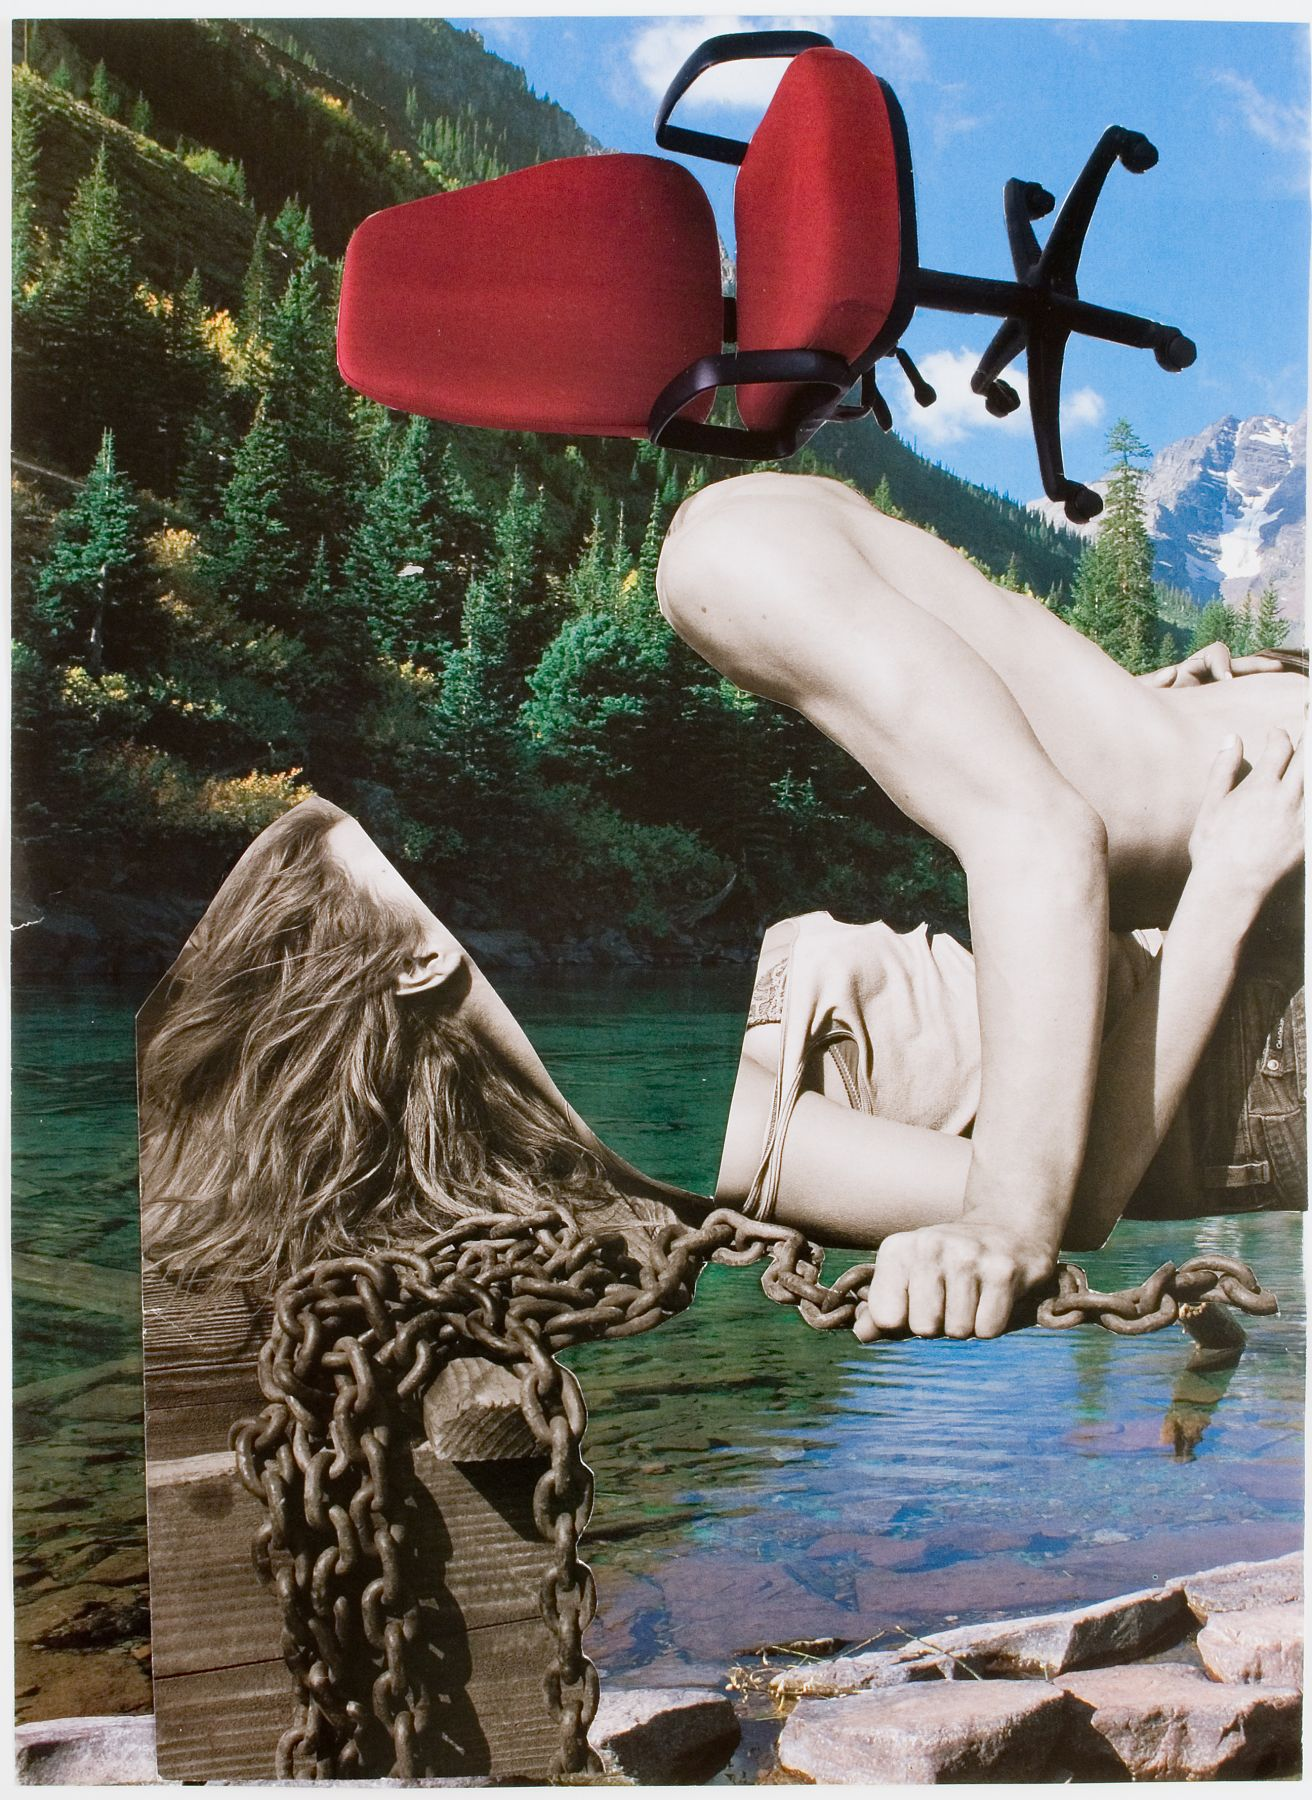 Jim Drain, Untitled, 2007, mixed media on paper, 9 1/2 x 13 7/8 inches